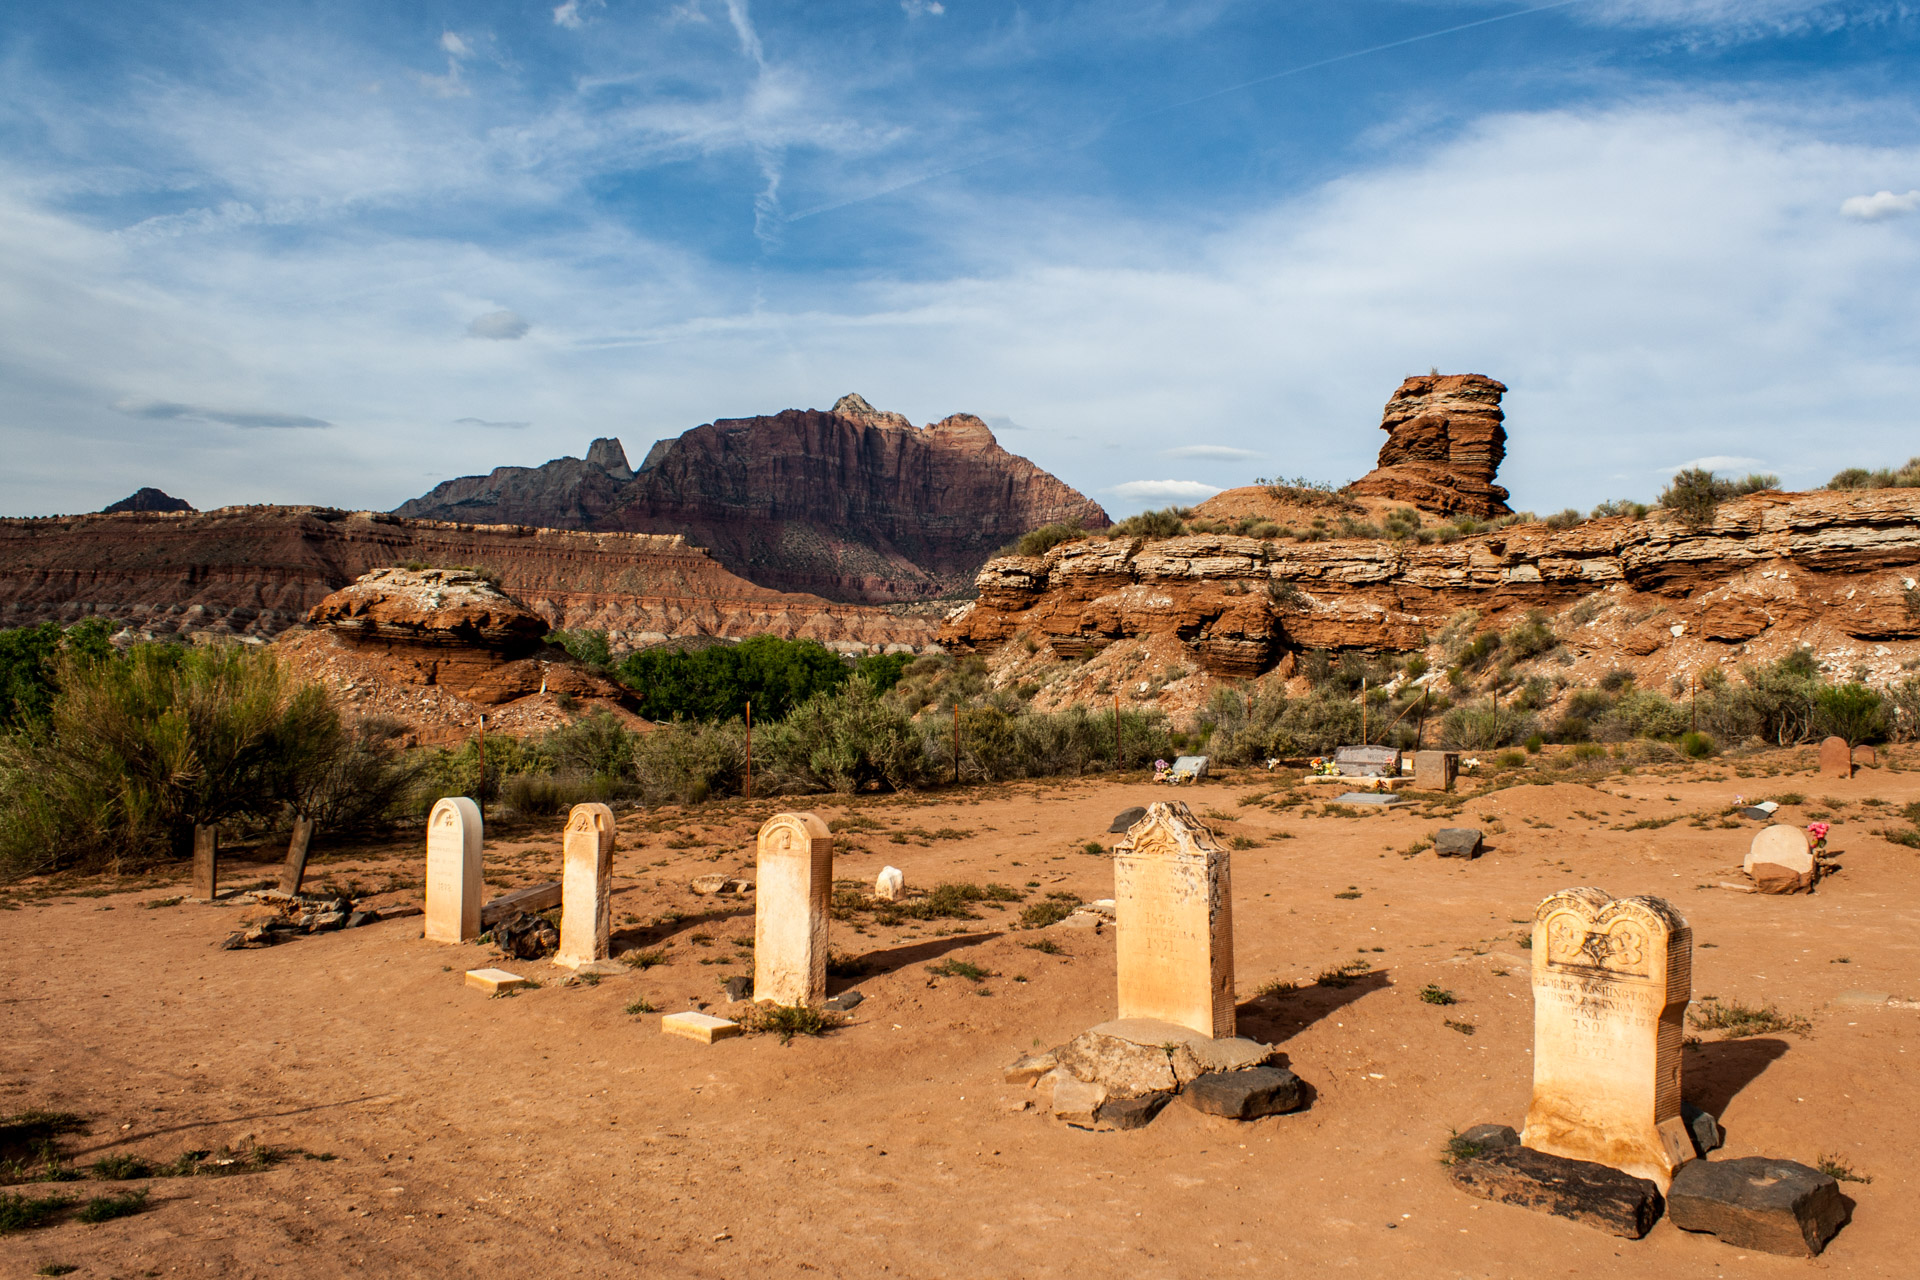 A Desert Ghost Town Cemetery (left close)